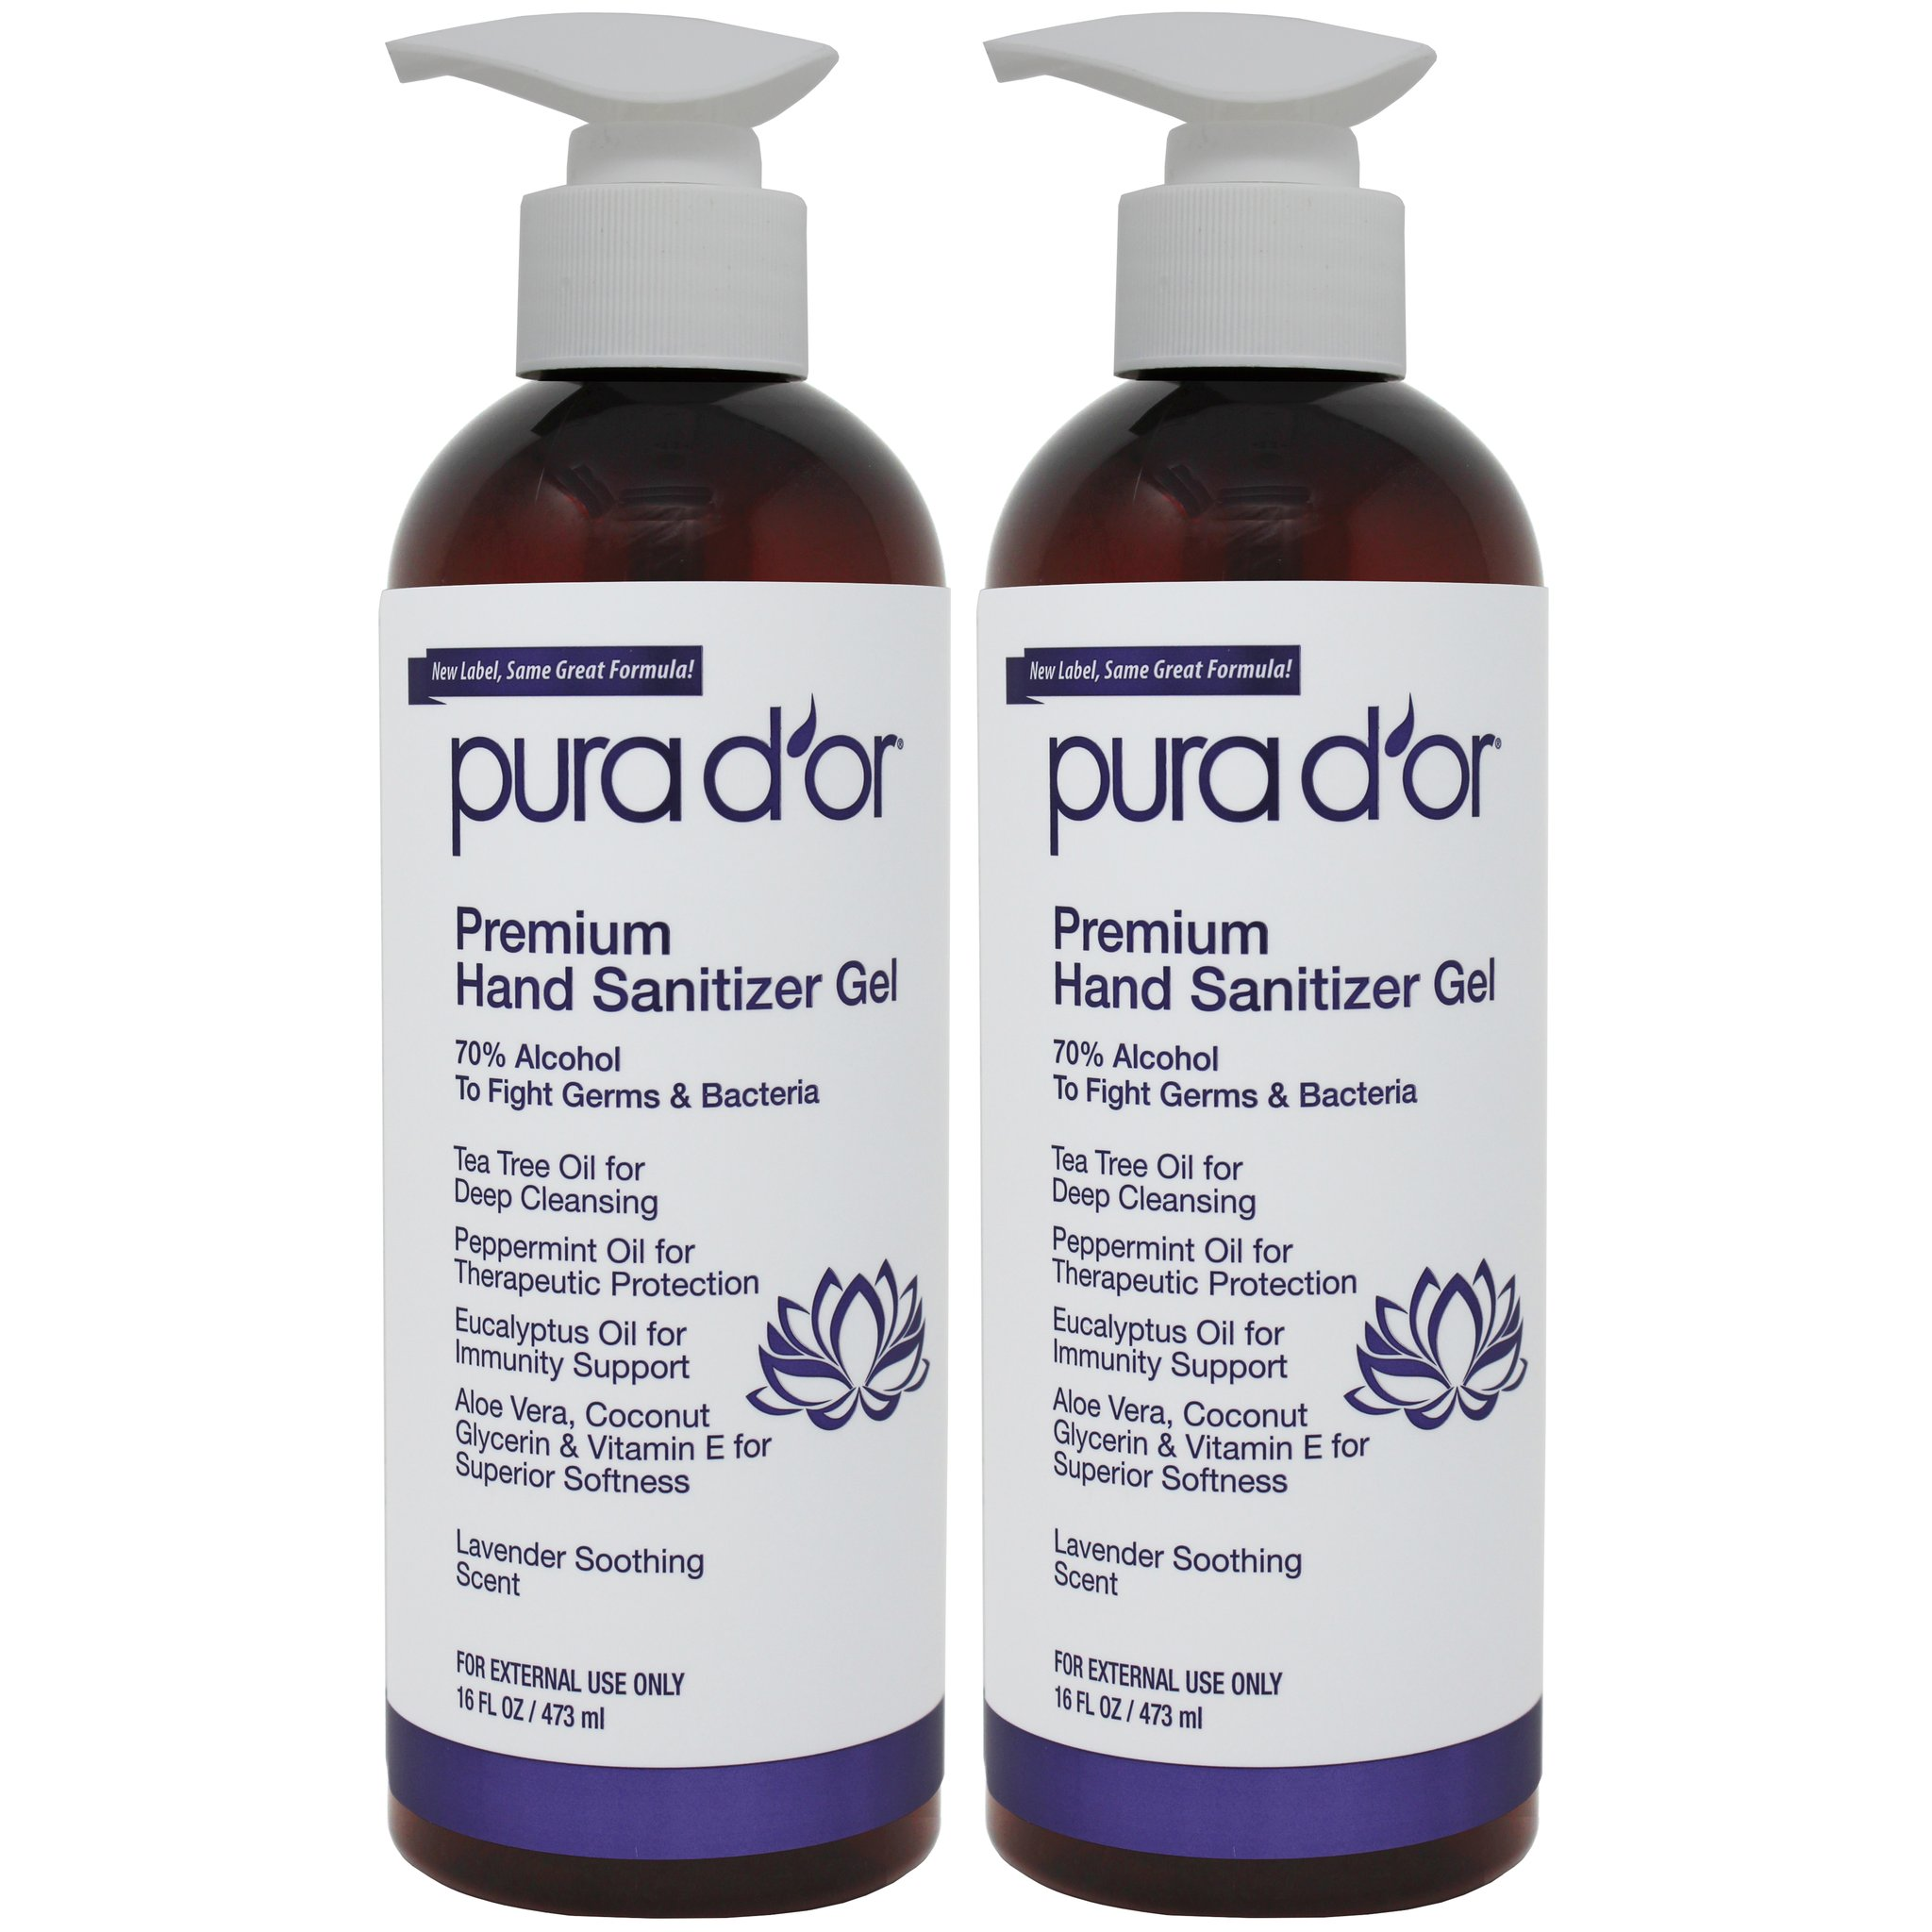 Non toxic, cruelty free hand sanitizer from Pura d'or | For Animals For Earth